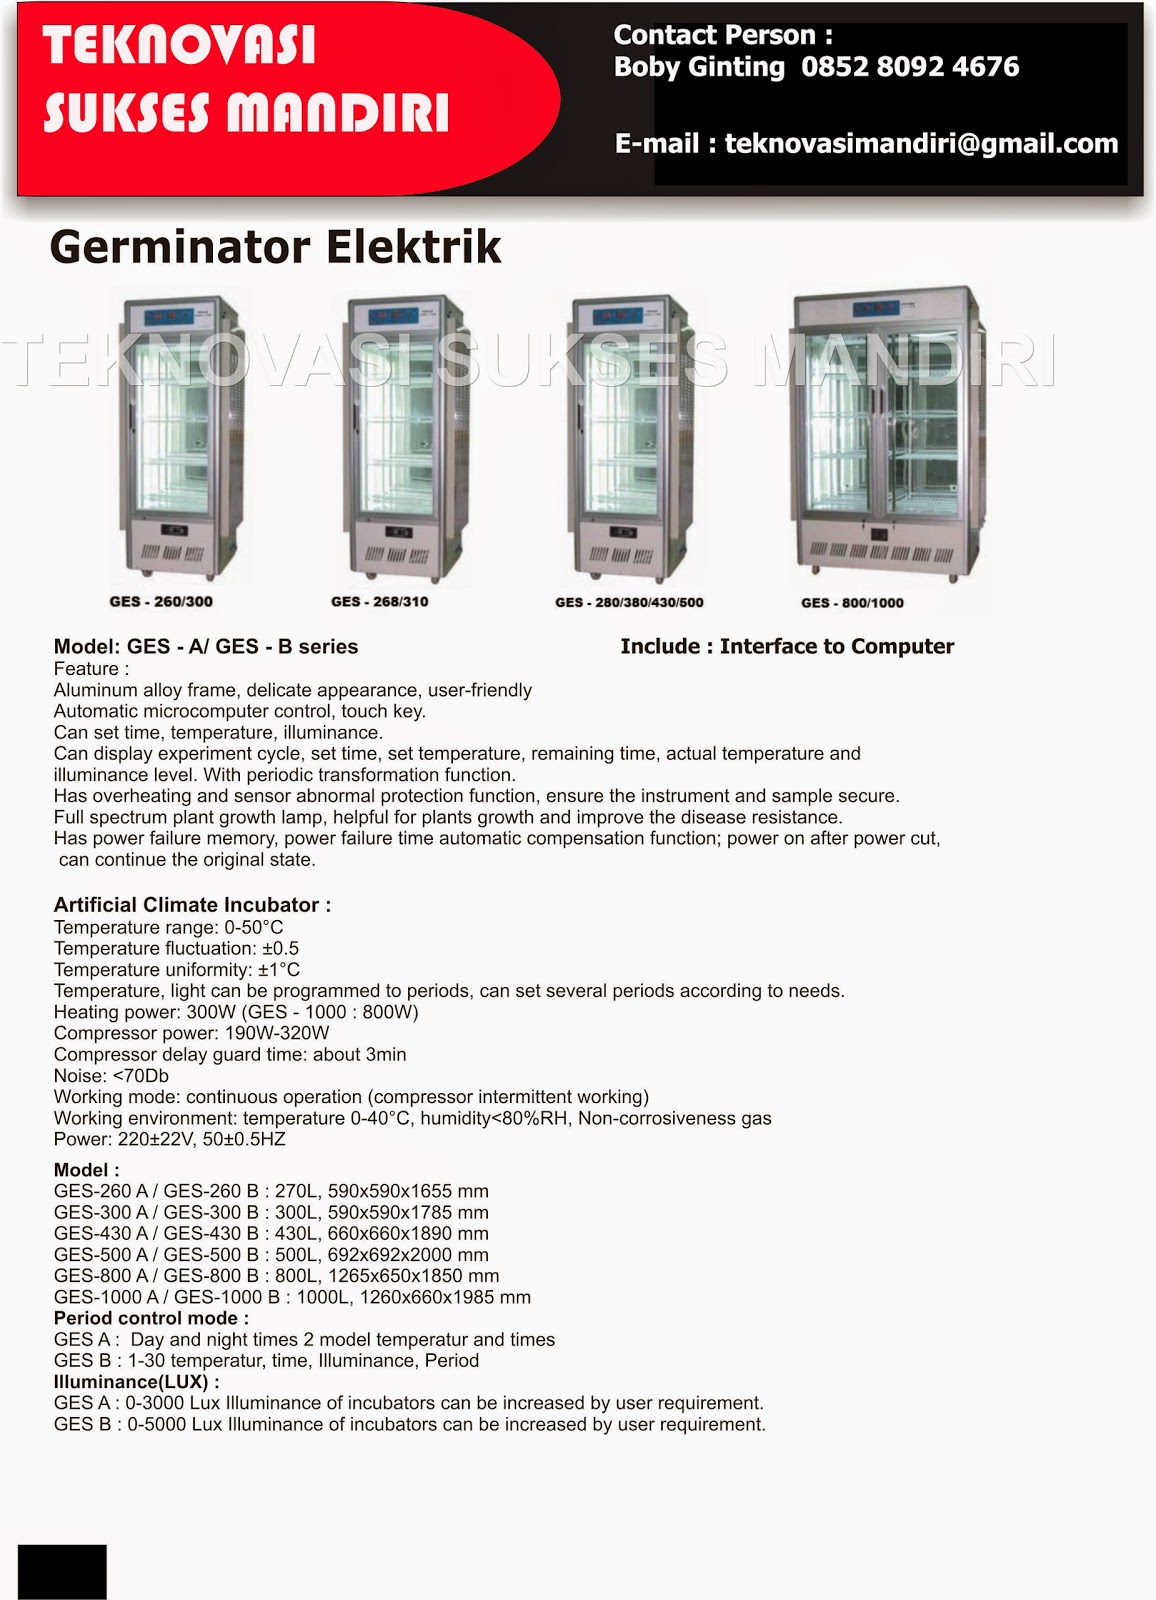 Electric Germinator